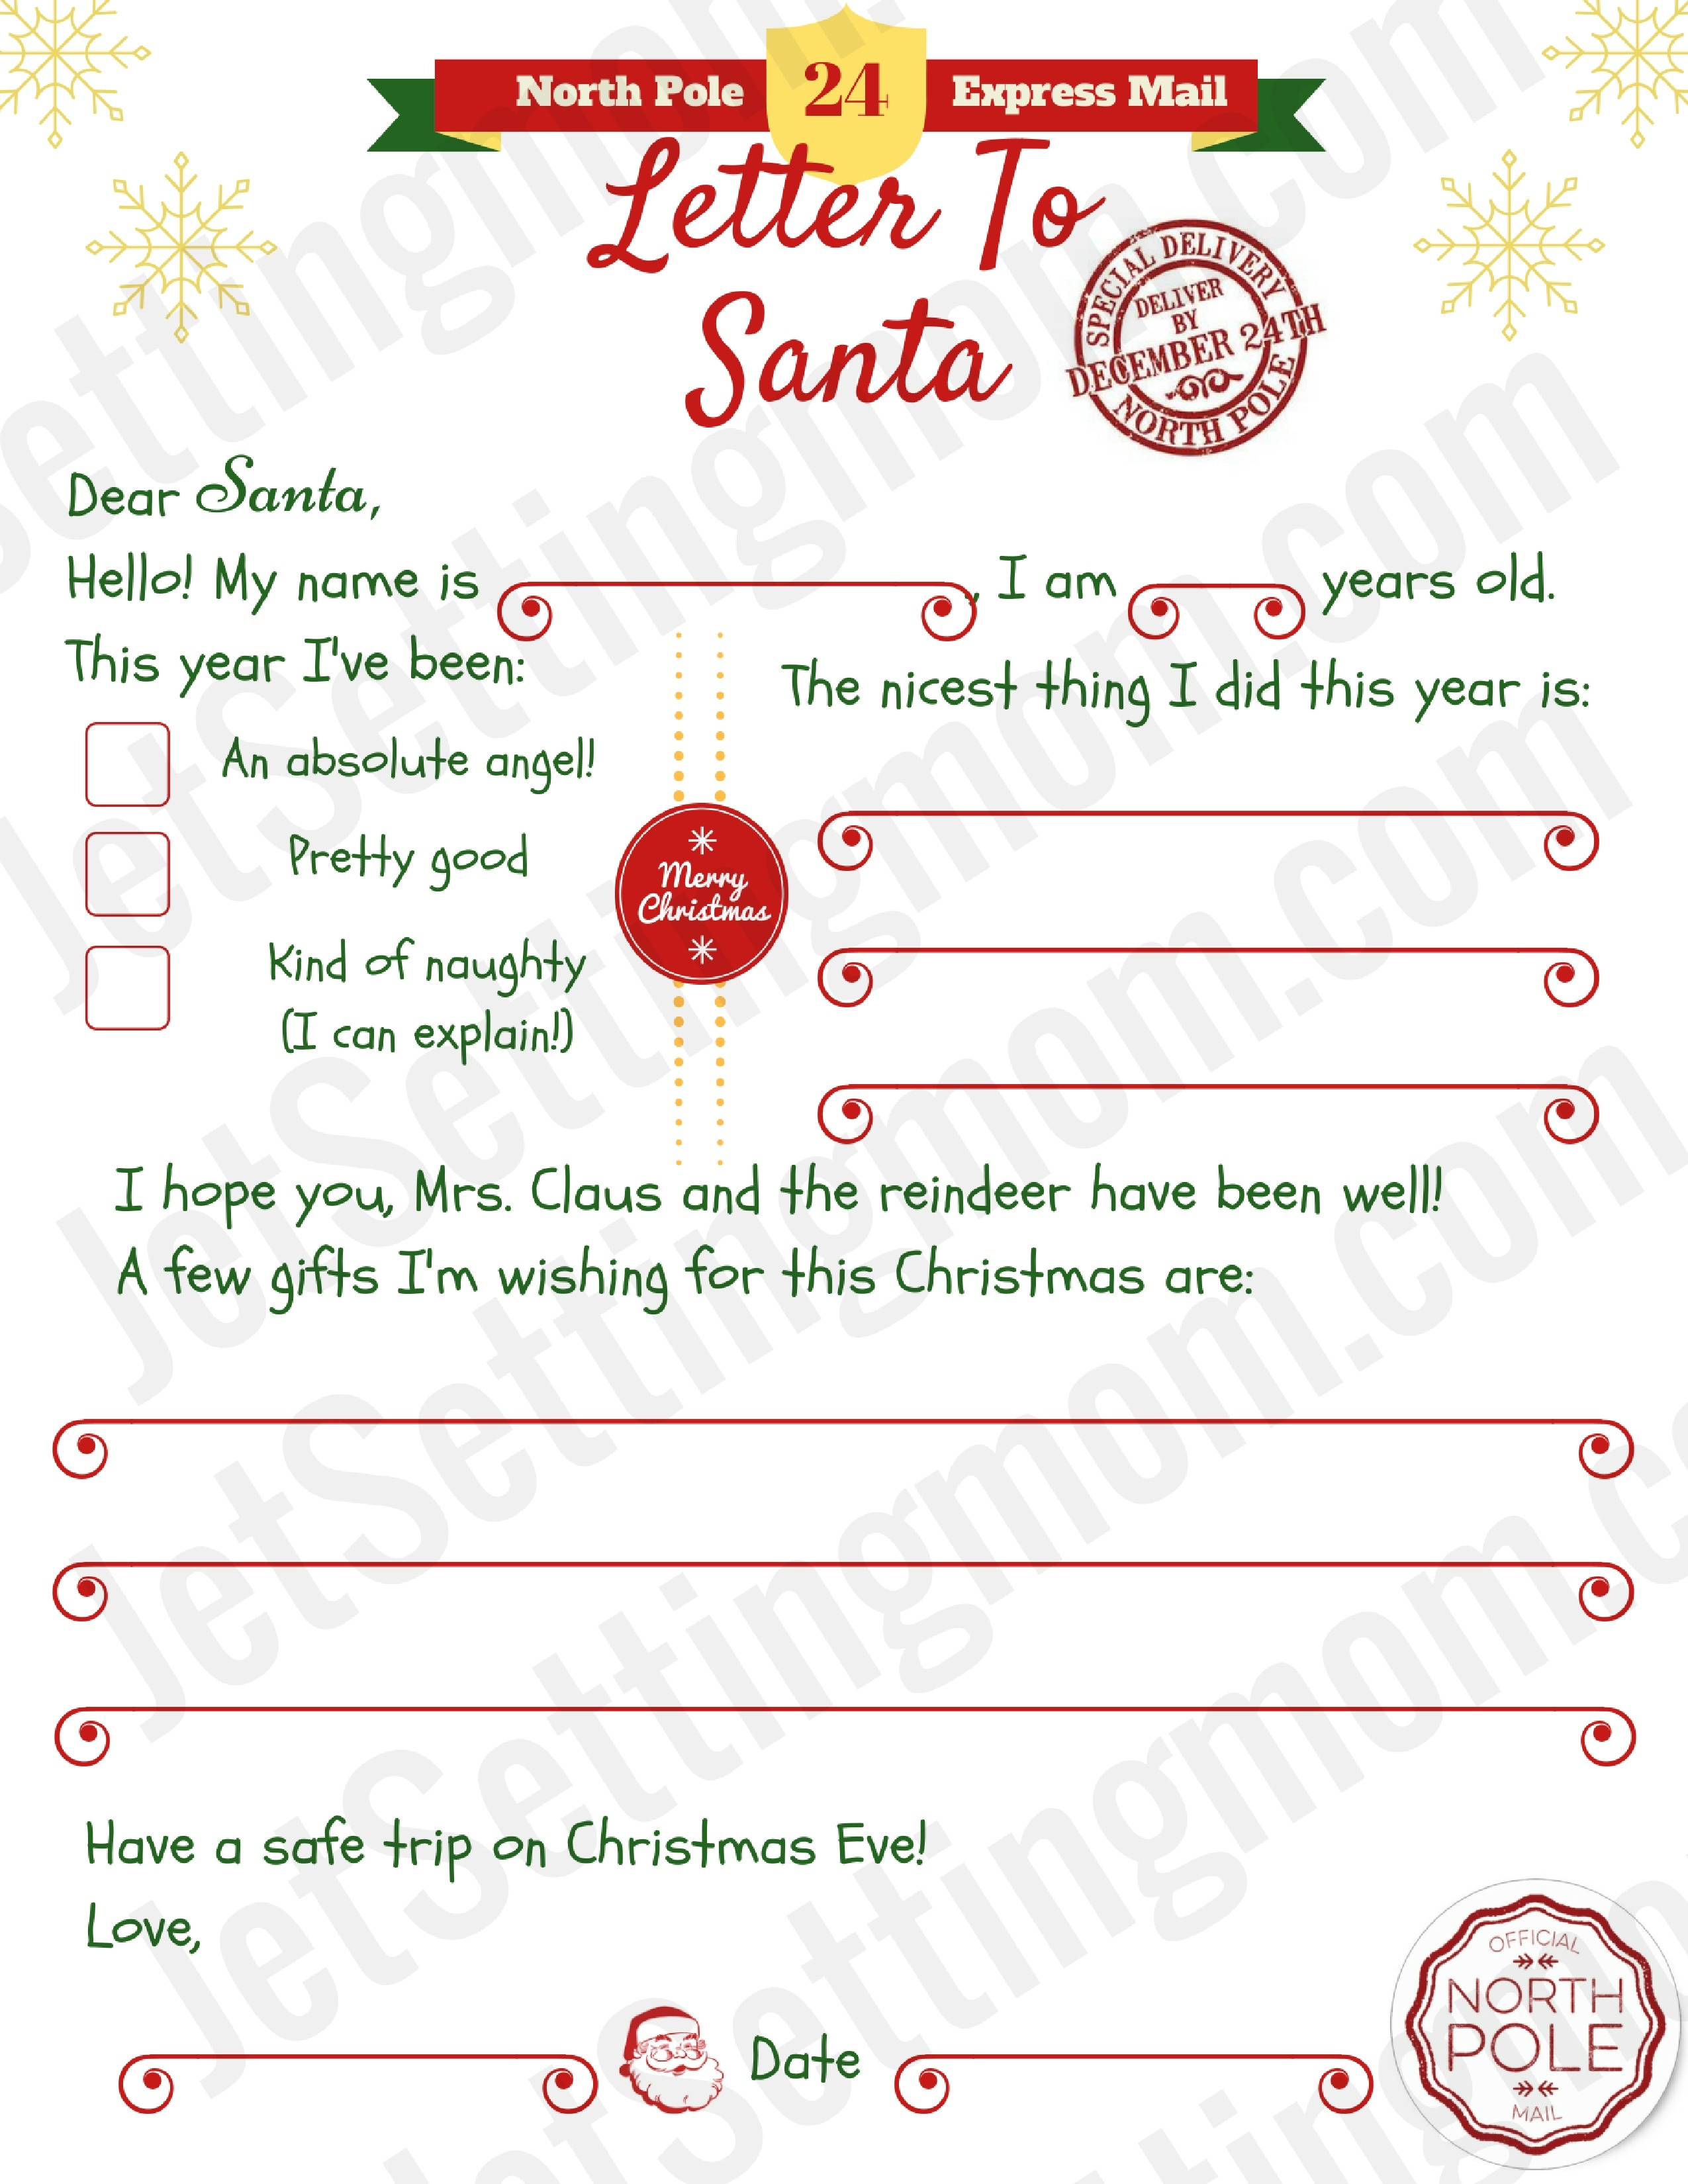 Free Printable Letter To Santa Template - Writing To Santa Made Easy! - Free Printable Letter Writing Templates